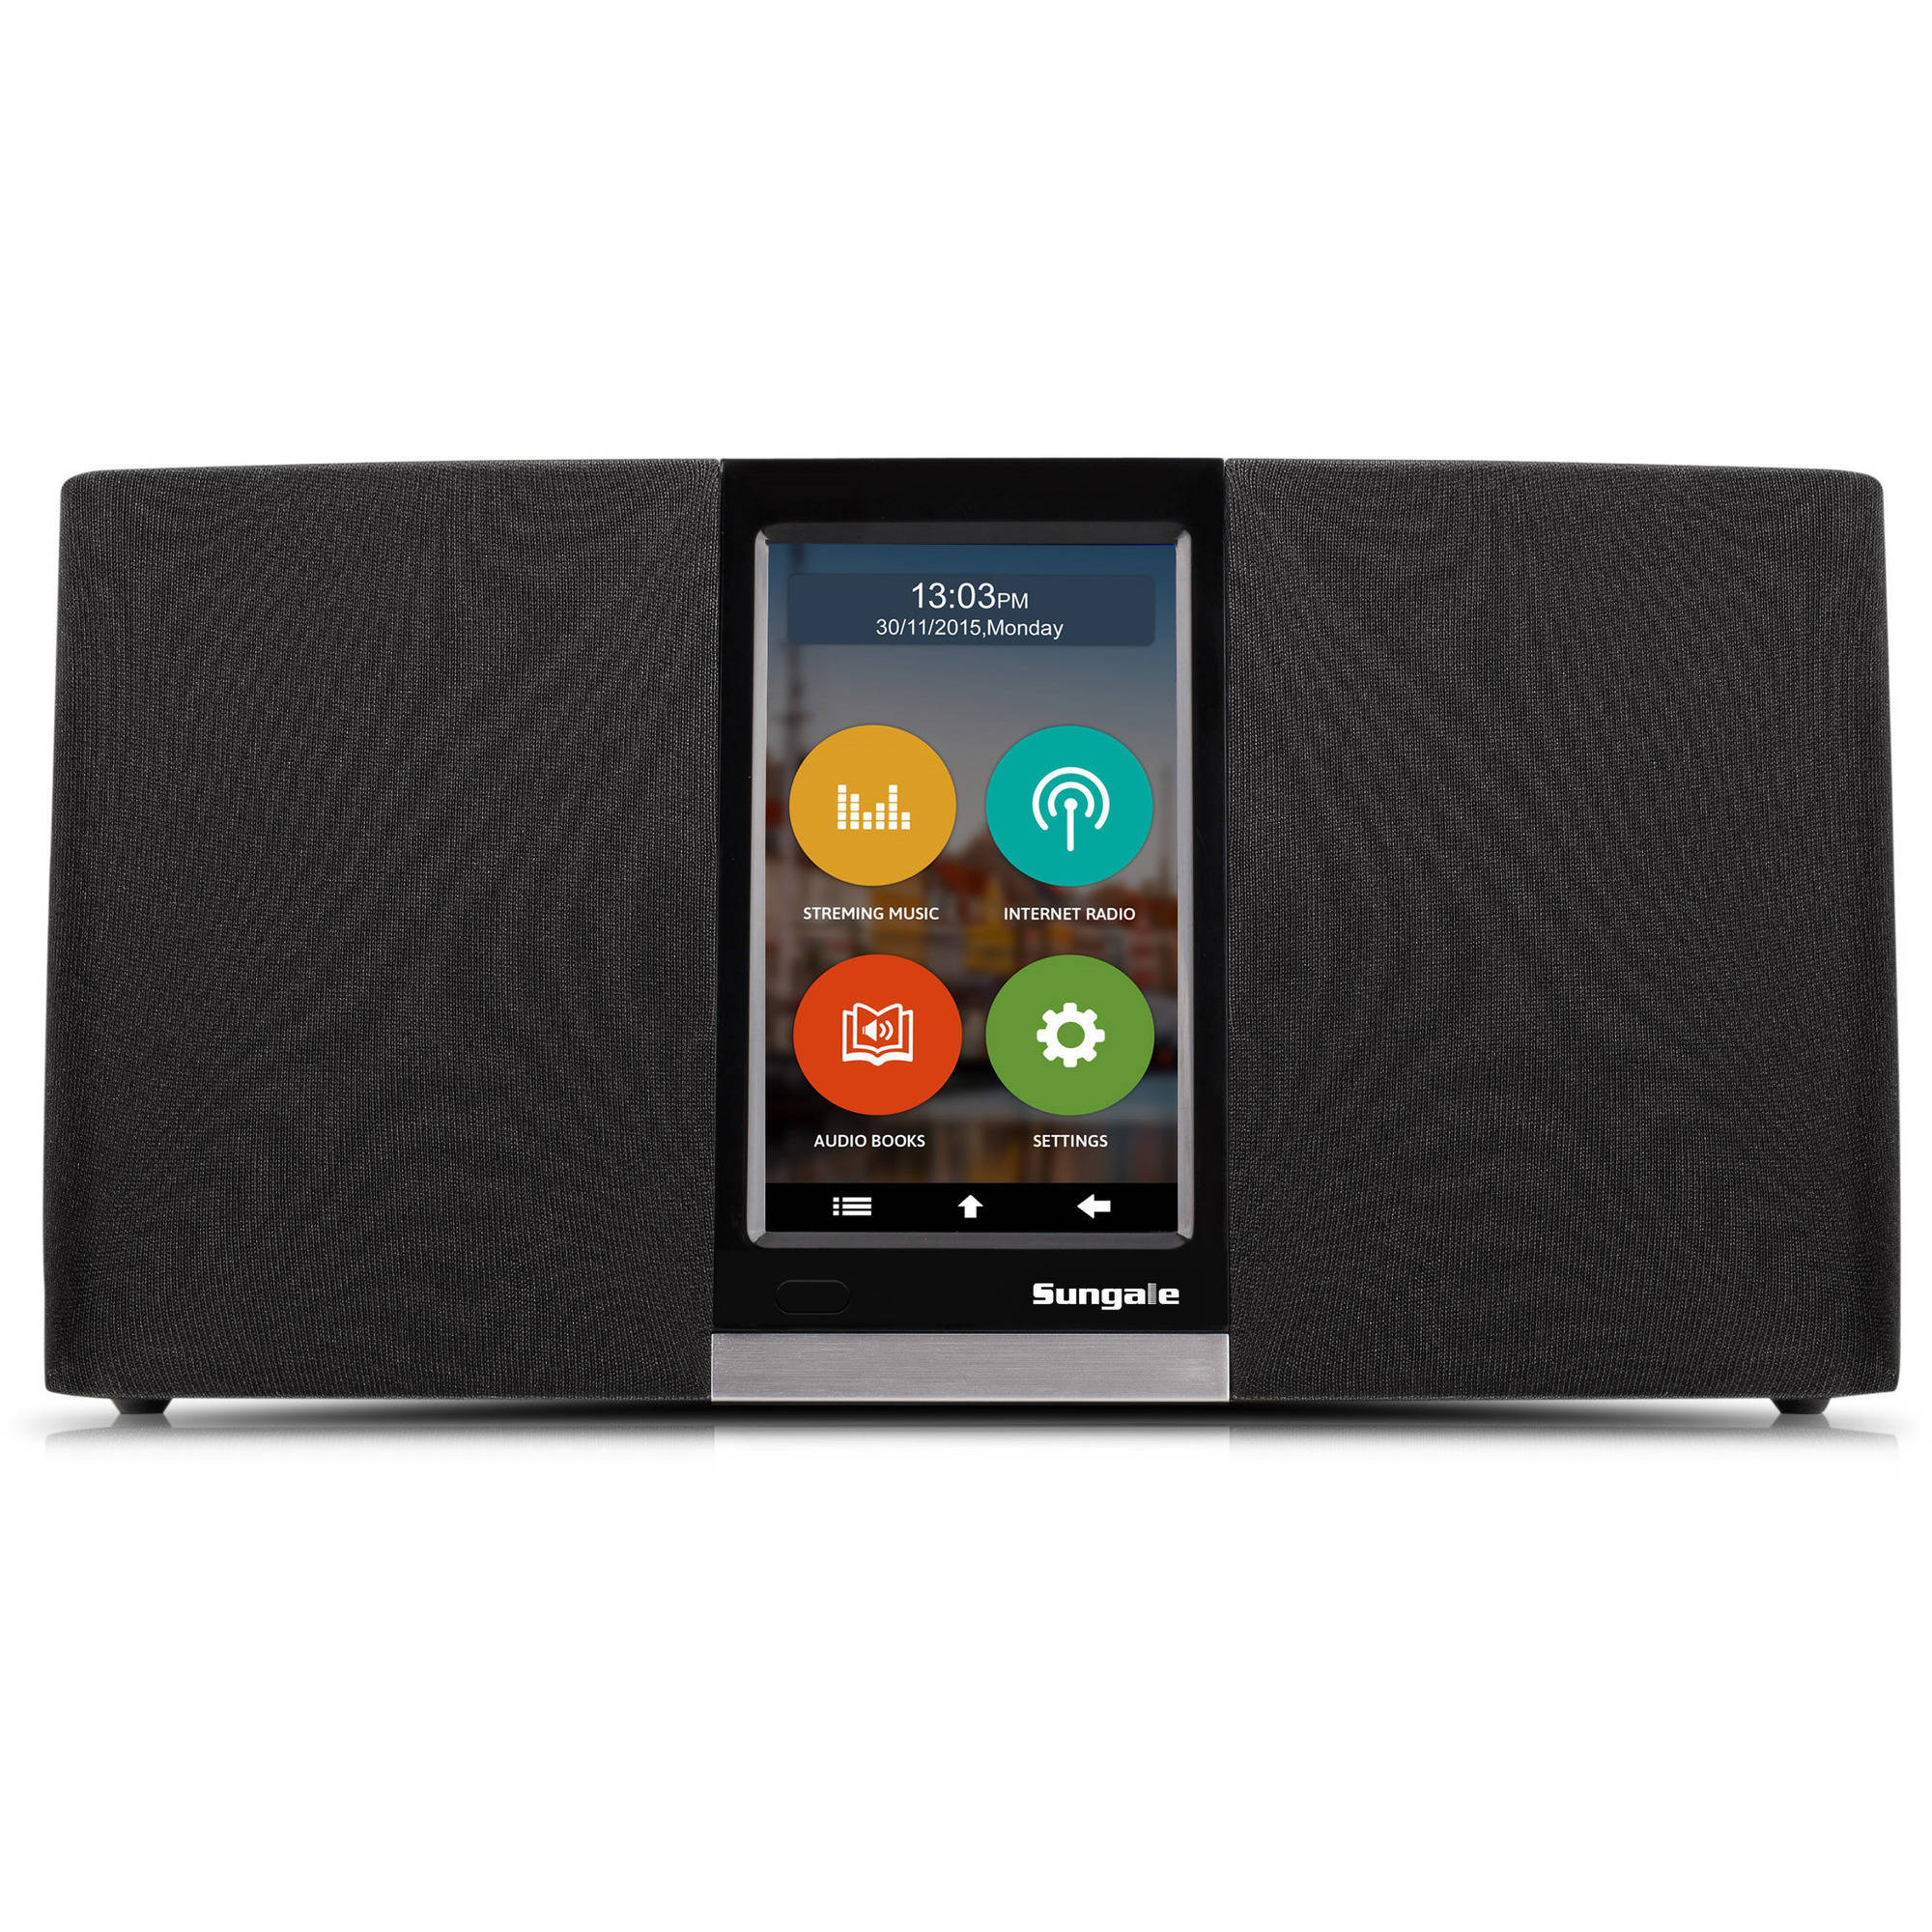 Sungale KWS433 WiFi Internet Radio with User-Friendly Touchscreen Navigation by Sungale